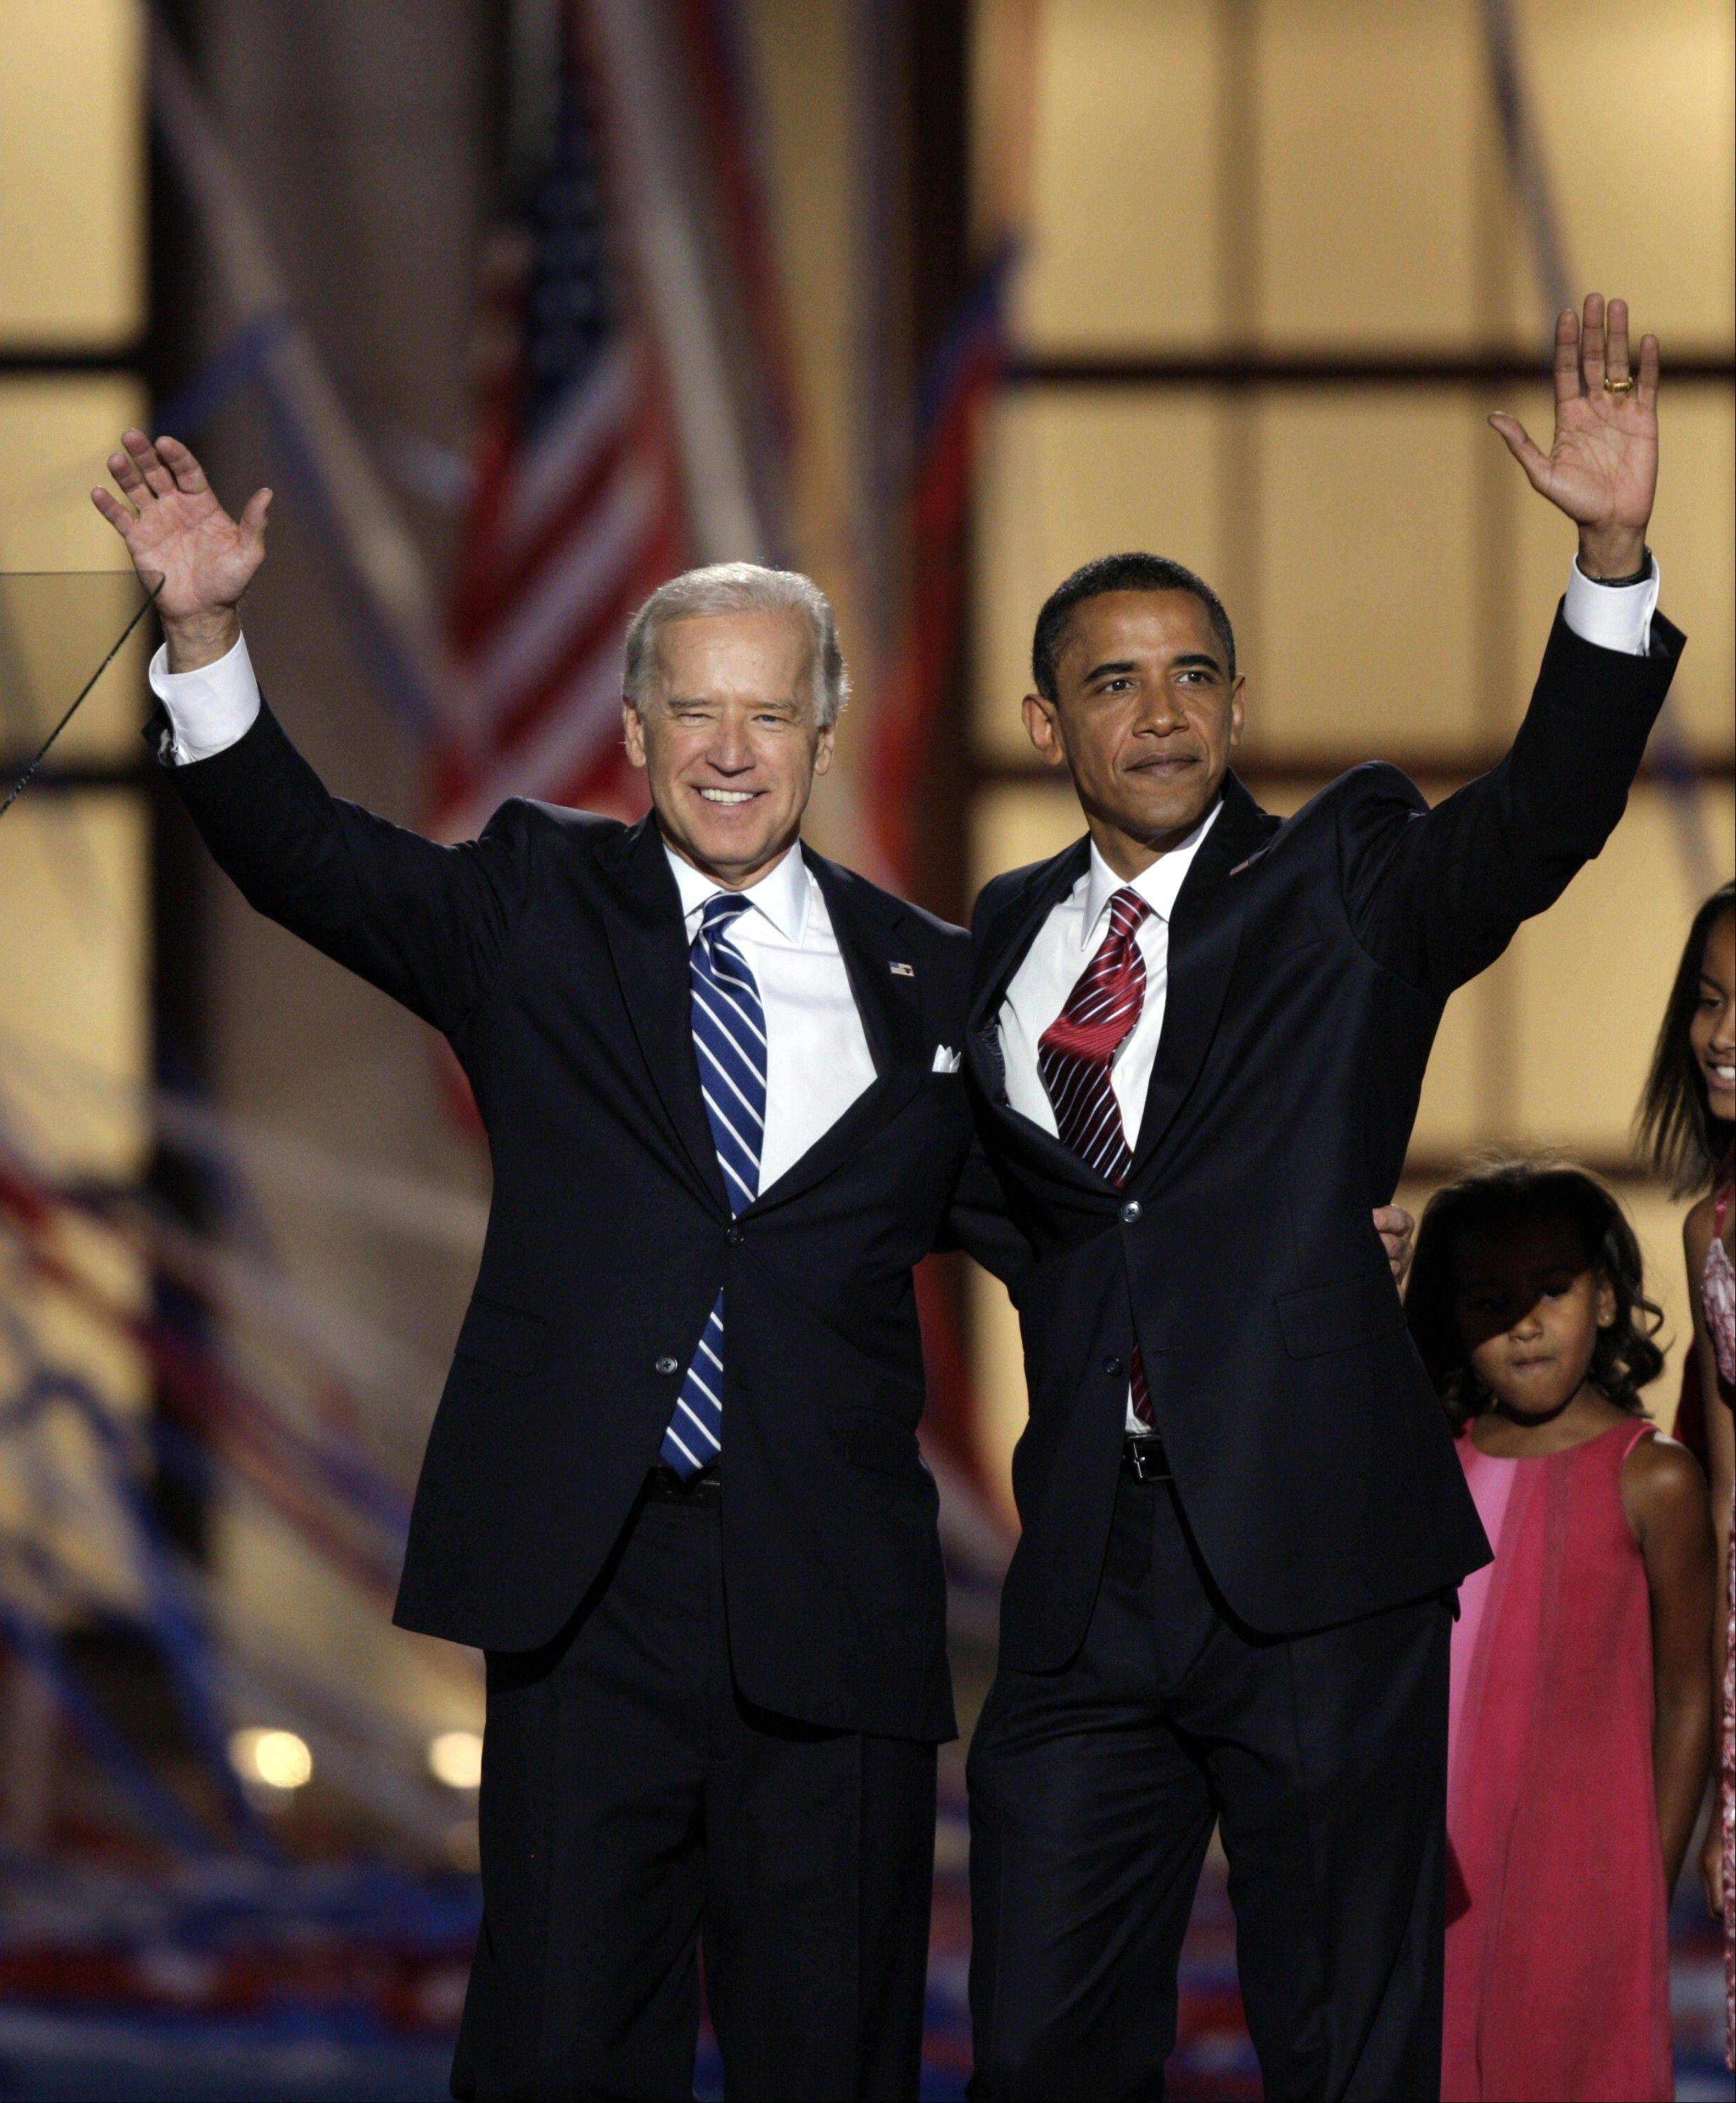 In this Aug. 28, 2008, file photo, Democratic presidential nominee, then-Sen. Barack Obama, D-Ill., and his running mate, then-Sen. Joe Biden, D-Del., wave after Obama's acceptance speech at the Democratic National Convention in Denver. Nearly four years after Barack Obama was elected to the most powerful office in the most powerful country in the world, the question remains: Who is he? This is a man who seemed to come out of nowhere. He had served seven years in the Illinois state Senate, and less than four years in the U.S. Senate _ a meager political resume, augmented by a stirring speech at the 2004 Democratic National Convention.